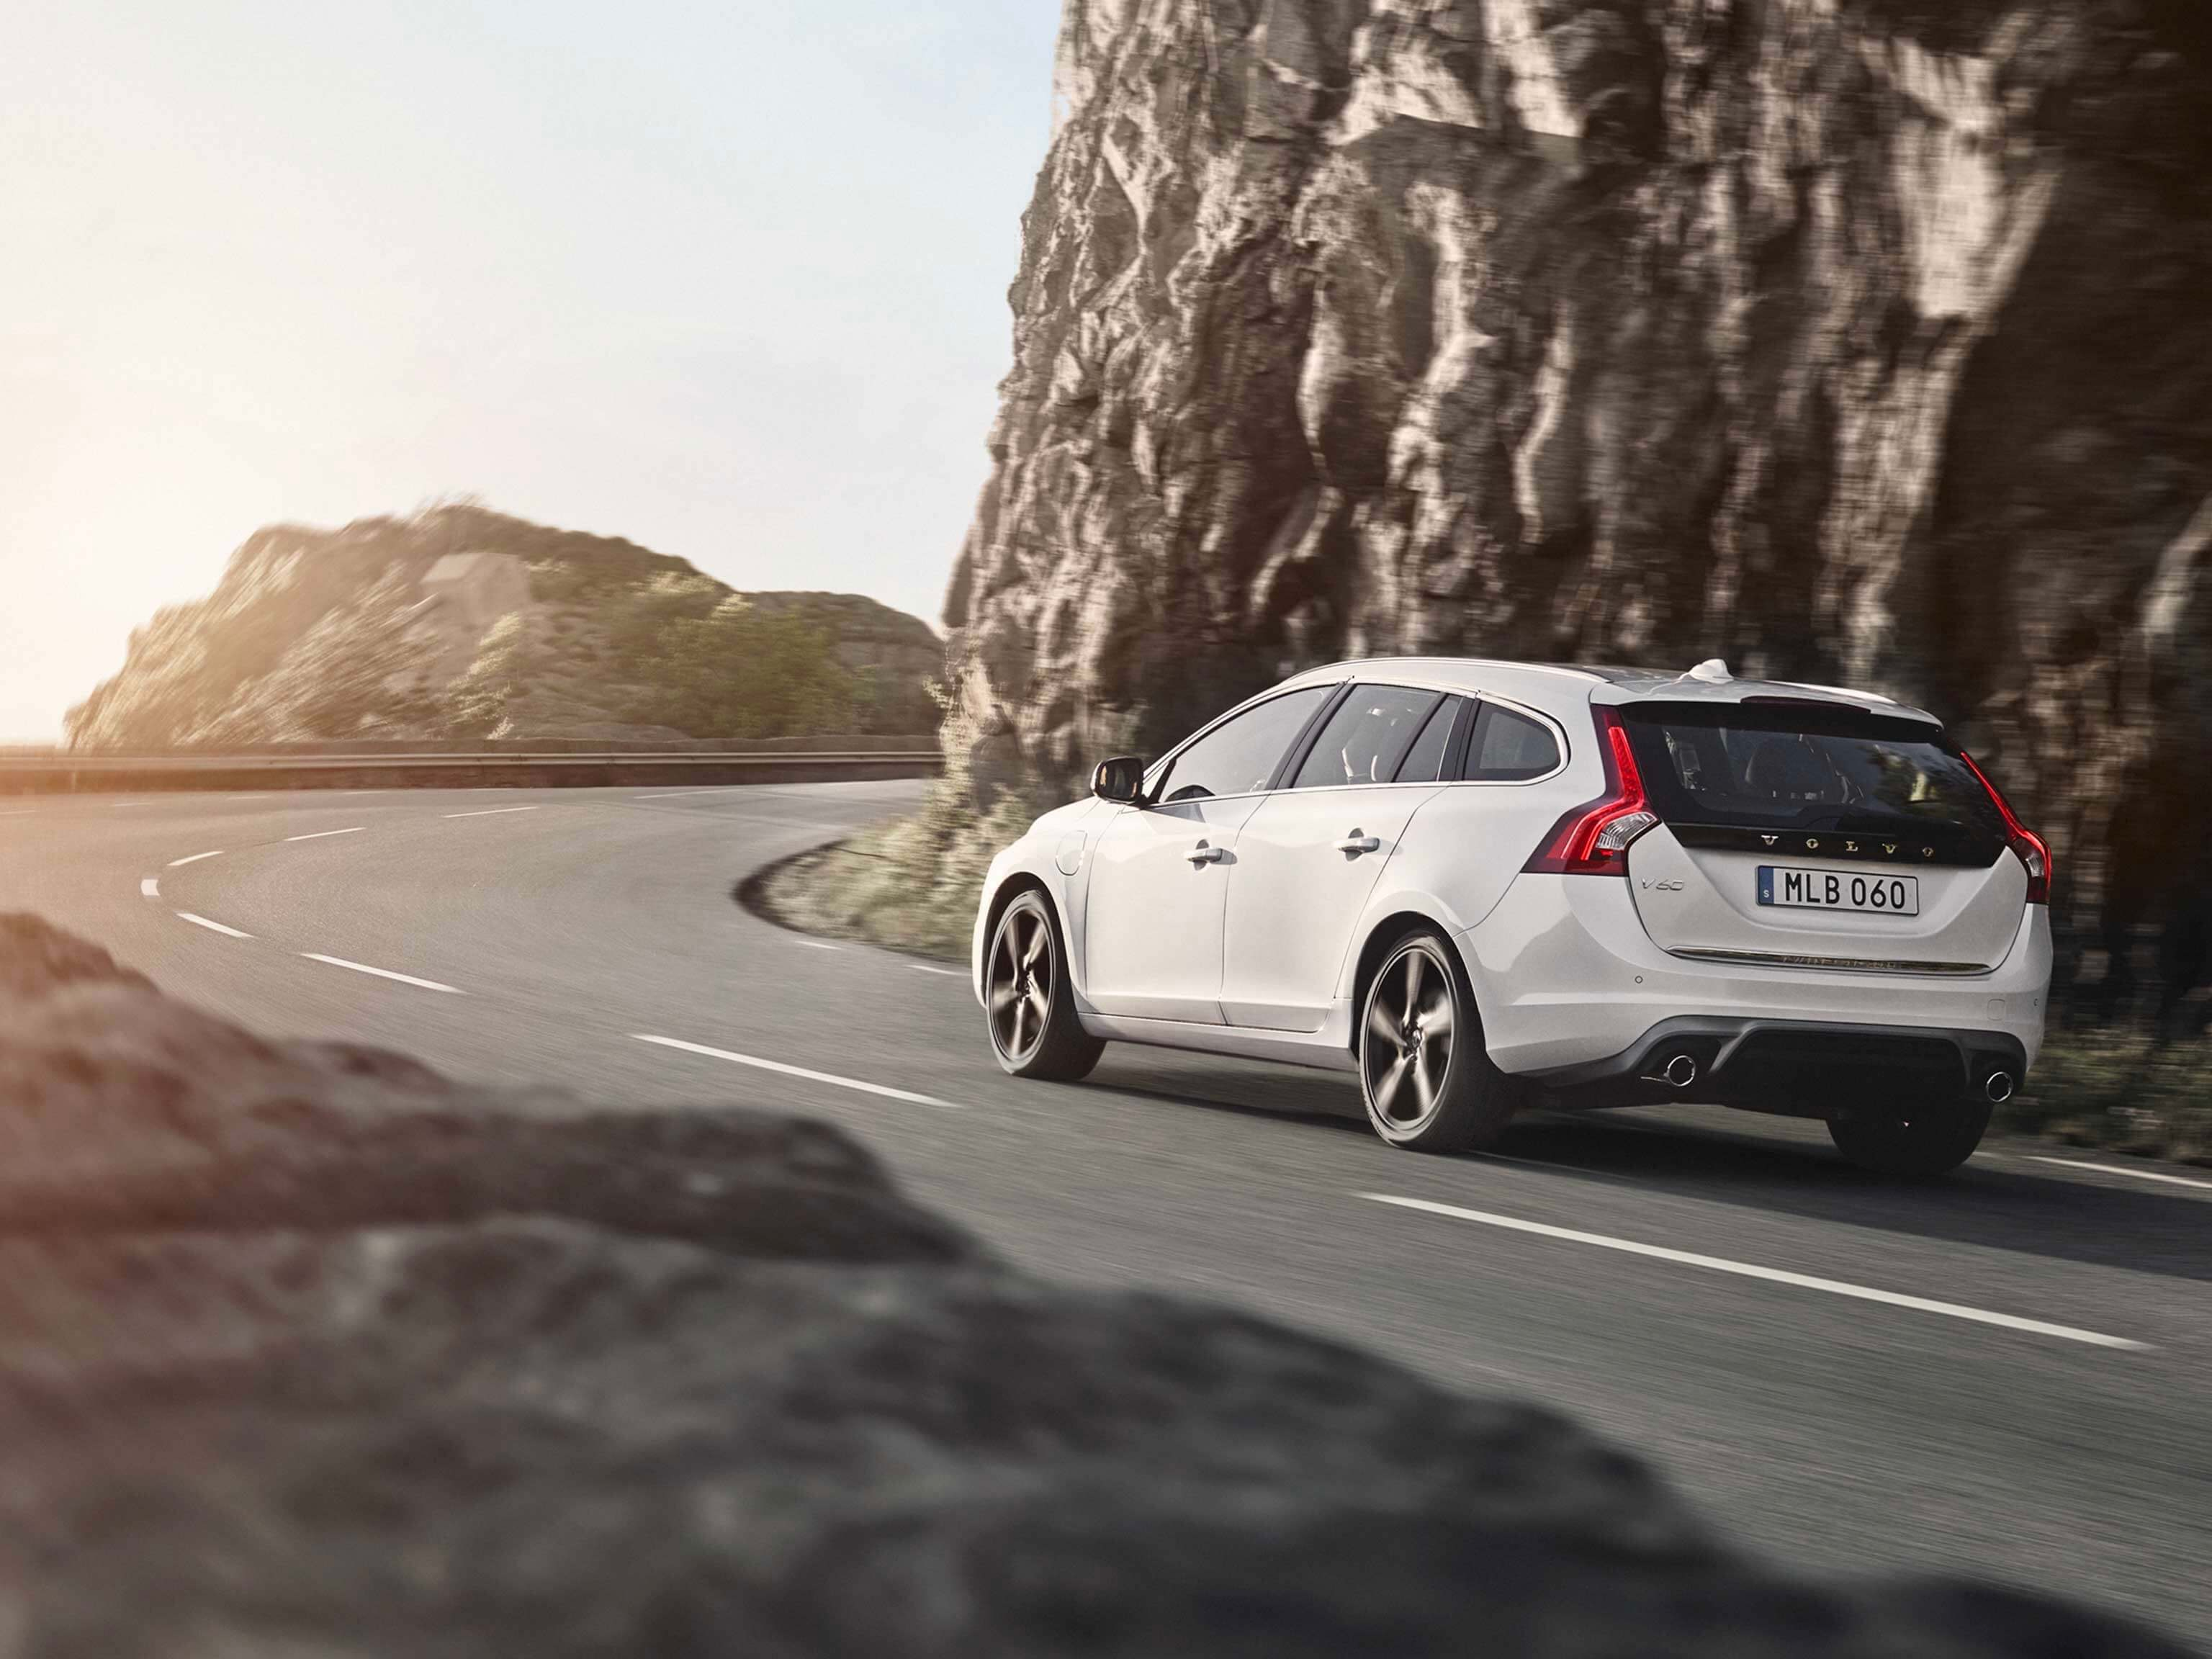 volvo v60 leasing f r 339 euro im monat brutto. Black Bedroom Furniture Sets. Home Design Ideas